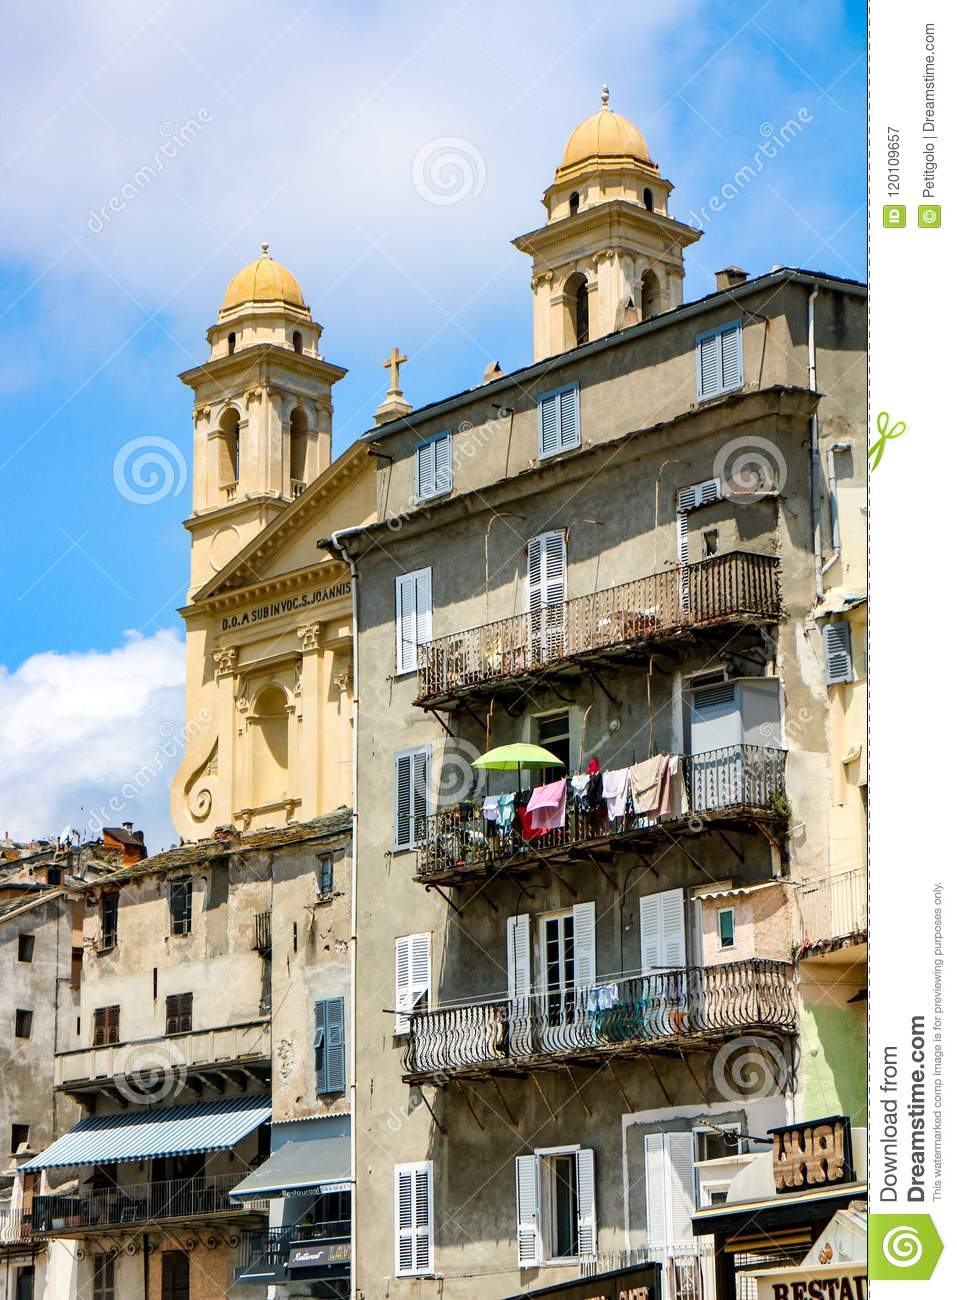 Bastia Vieux Port Downtown Stock Image Image Of Street Statue